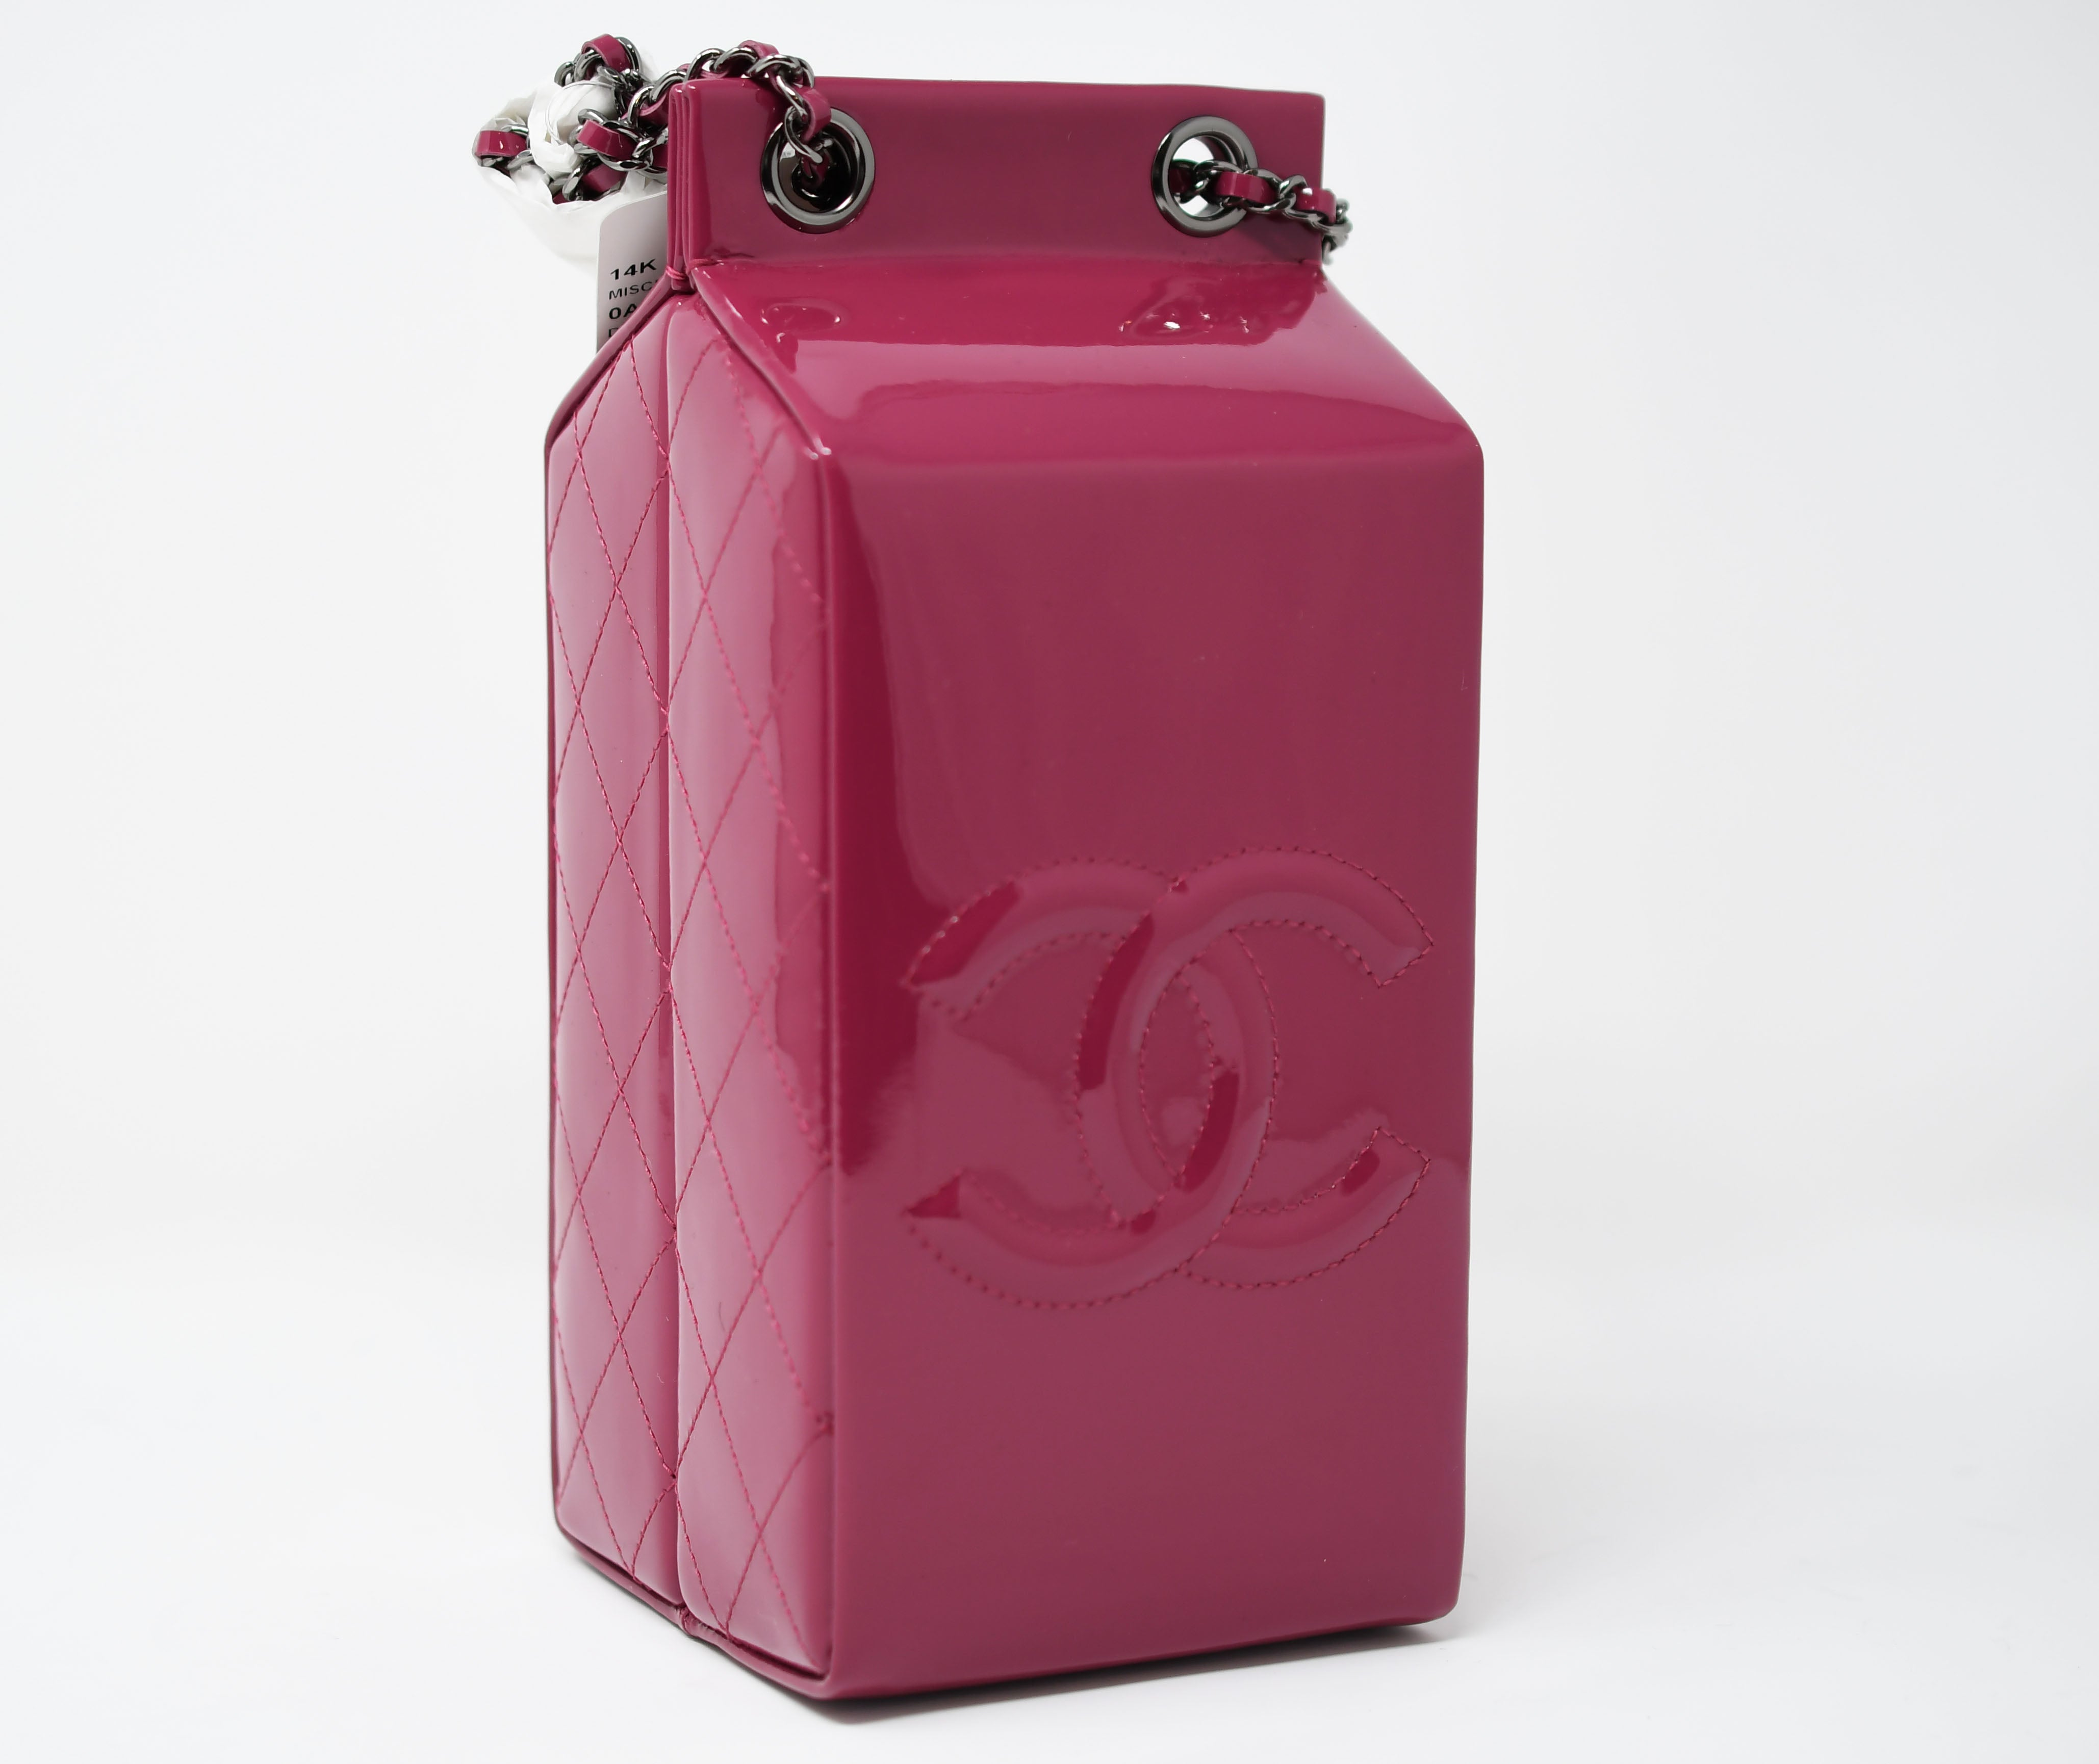 bb24a9a35ac4 Chanel Milk Carton Bag For Sale at 1stdibs